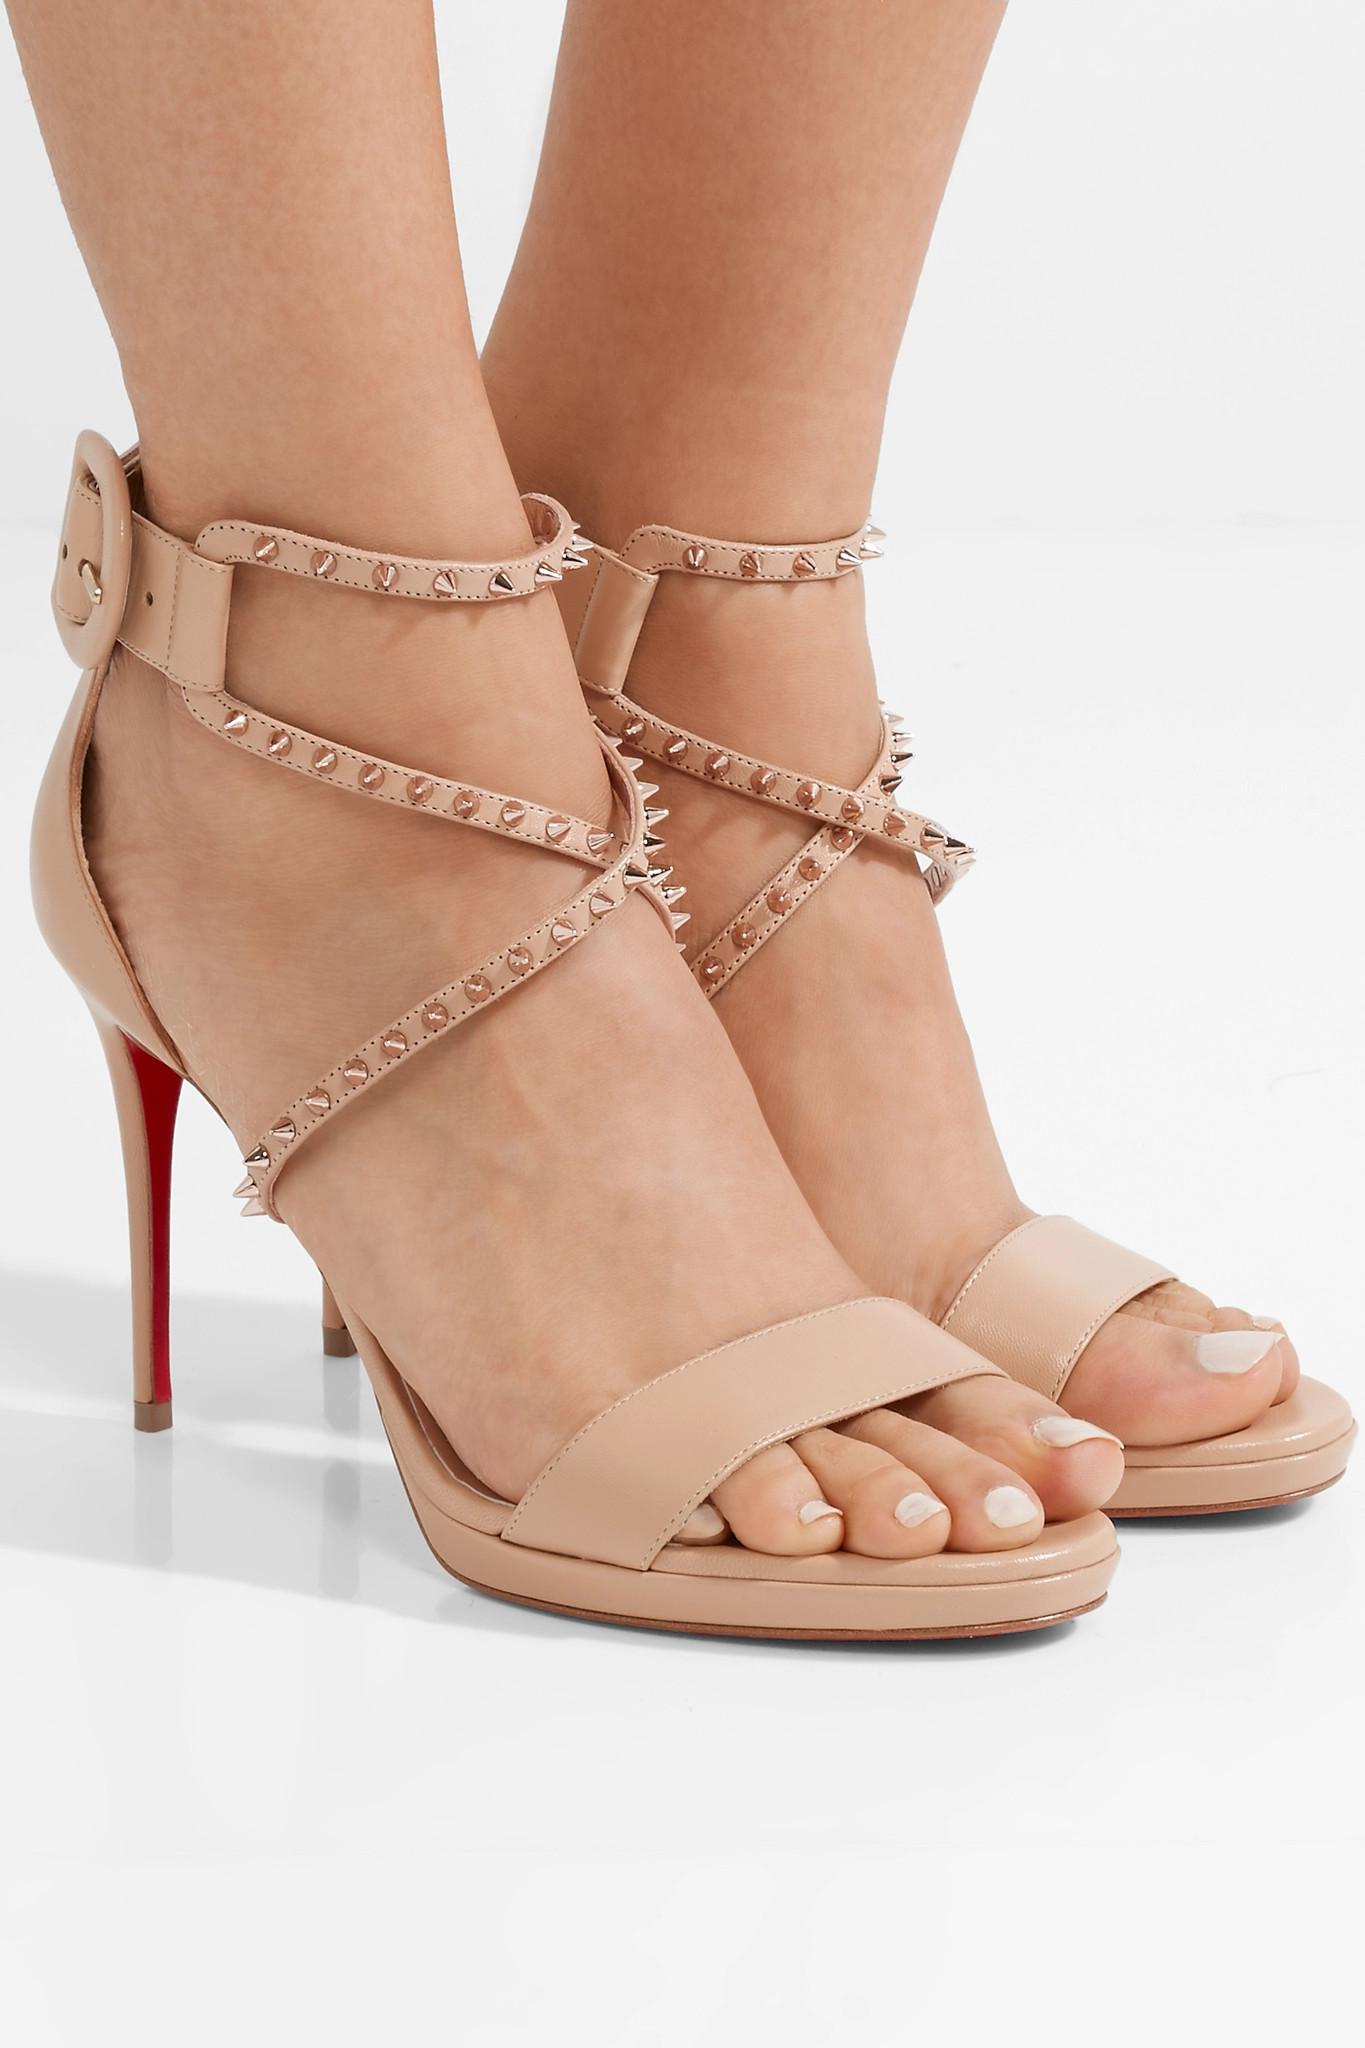 c6d747ea003 Christian Louboutin Choca Lux 100 Studded Leather Sandals - Lyst